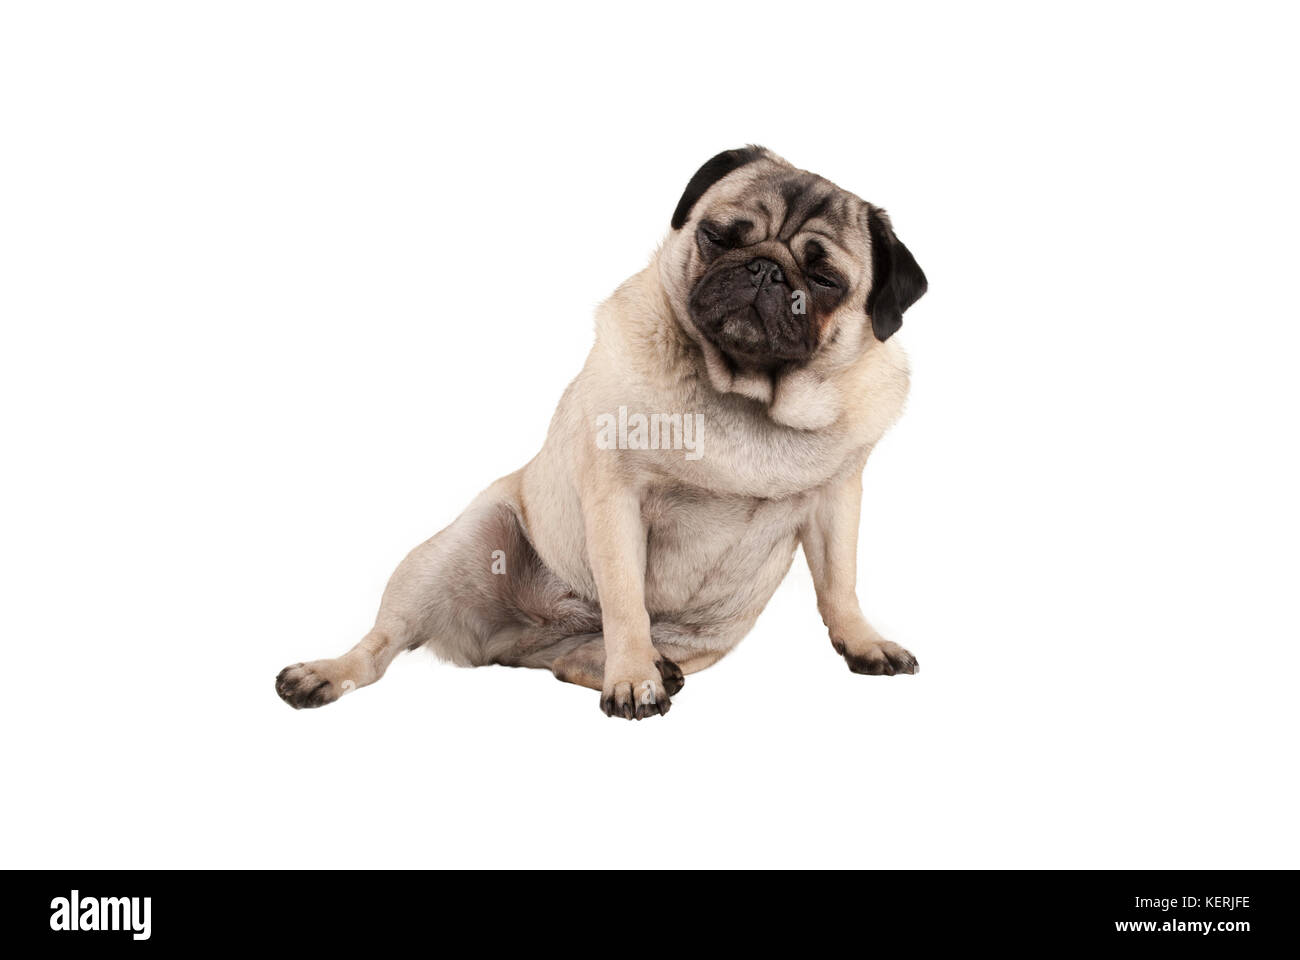 funny cool cocky pug puppy dog, sitting down with funny facial expression, isolated on white background Stock Photo